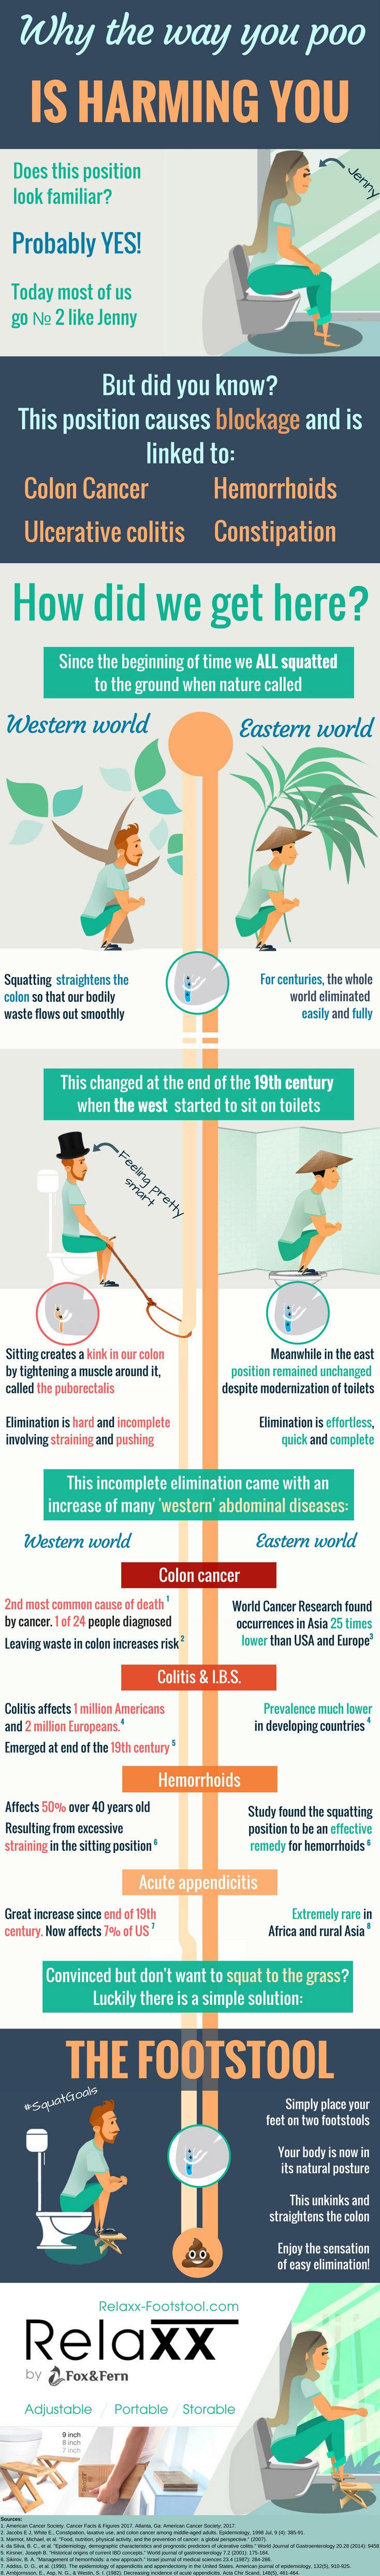 How Your Poo-Pose (Sit or Squat) Impacts Your Health - Infographic